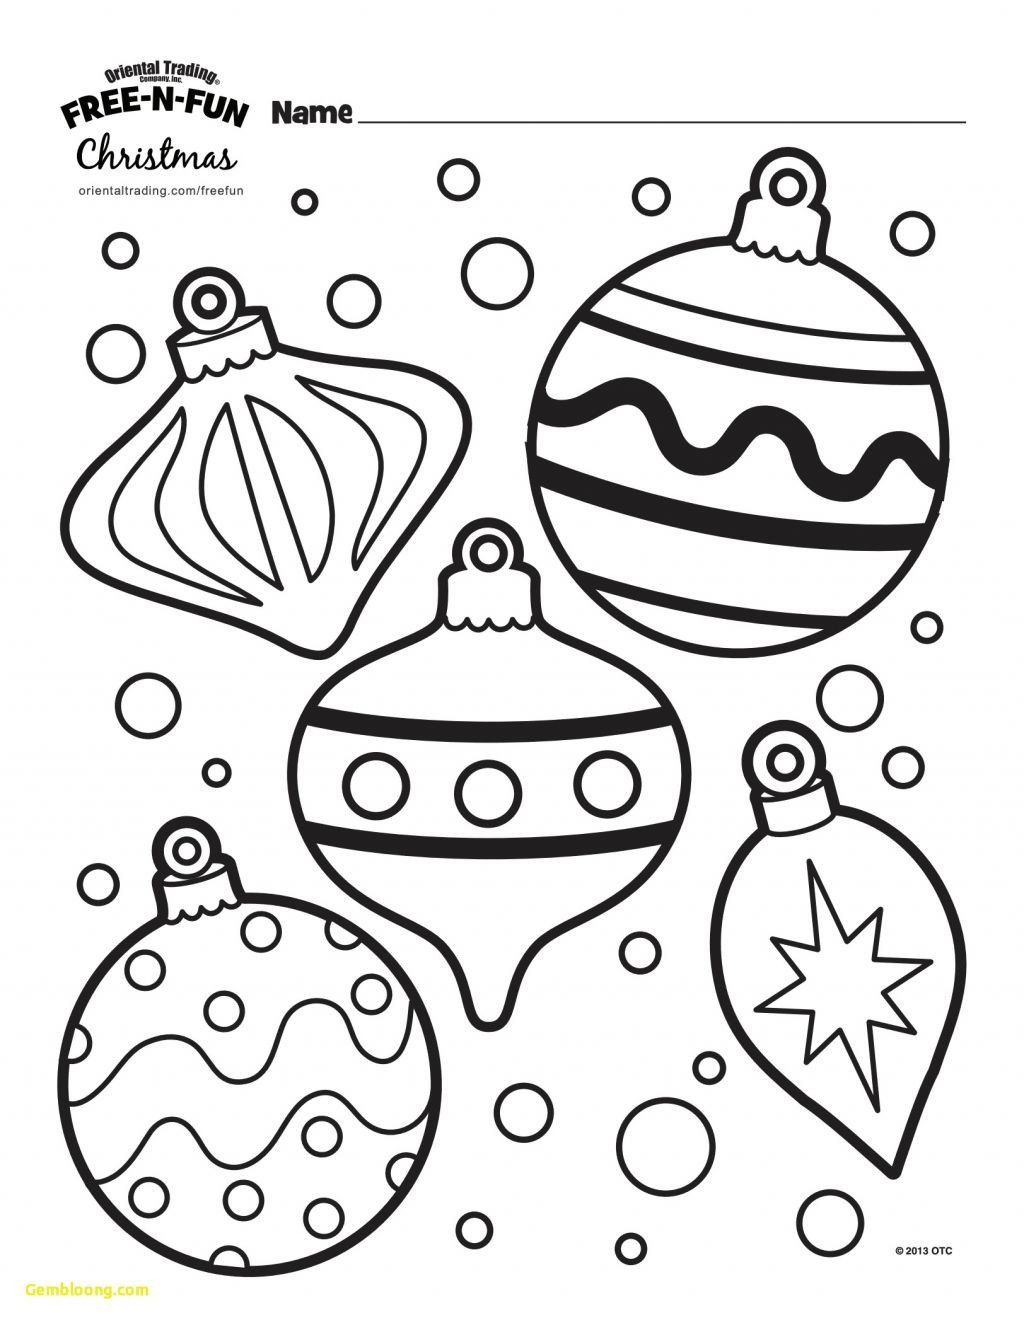 Kids Coloring Pages Printable Coloring Pages Christmas Coloring For K In 2020 Free Christmas Coloring Pages Printable Christmas Coloring Pages Christmas Coloring Pages